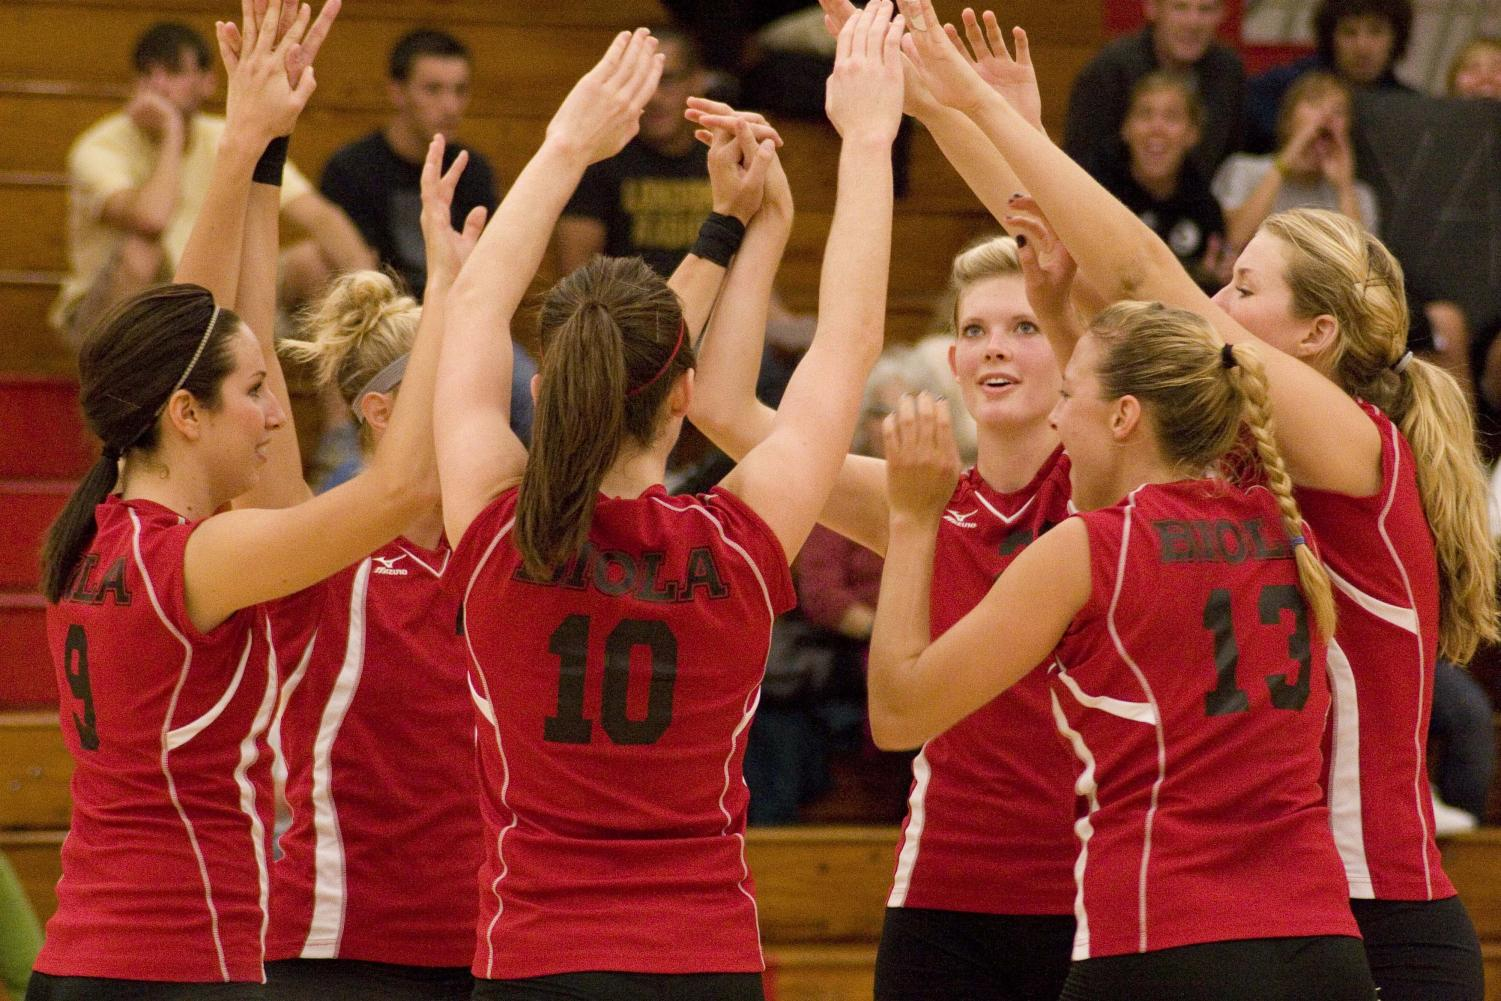 The volleyball team celebrates with some high fives during their victory over Westmont Tuesday night's game.